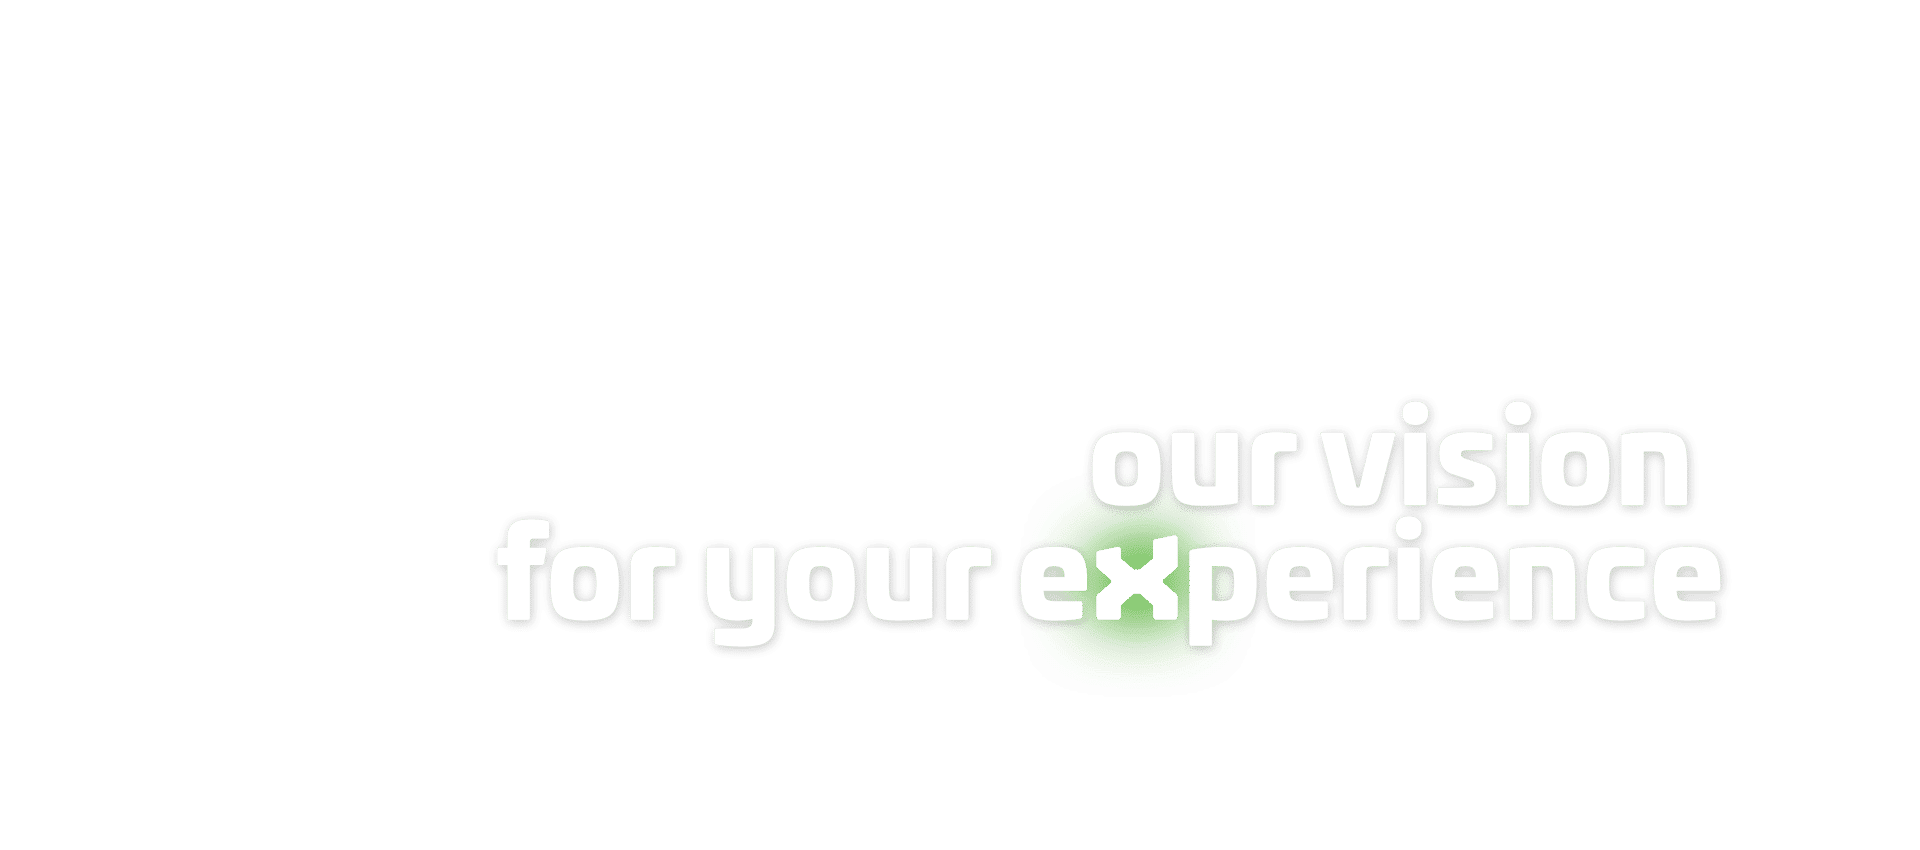 our vision for your eXperience